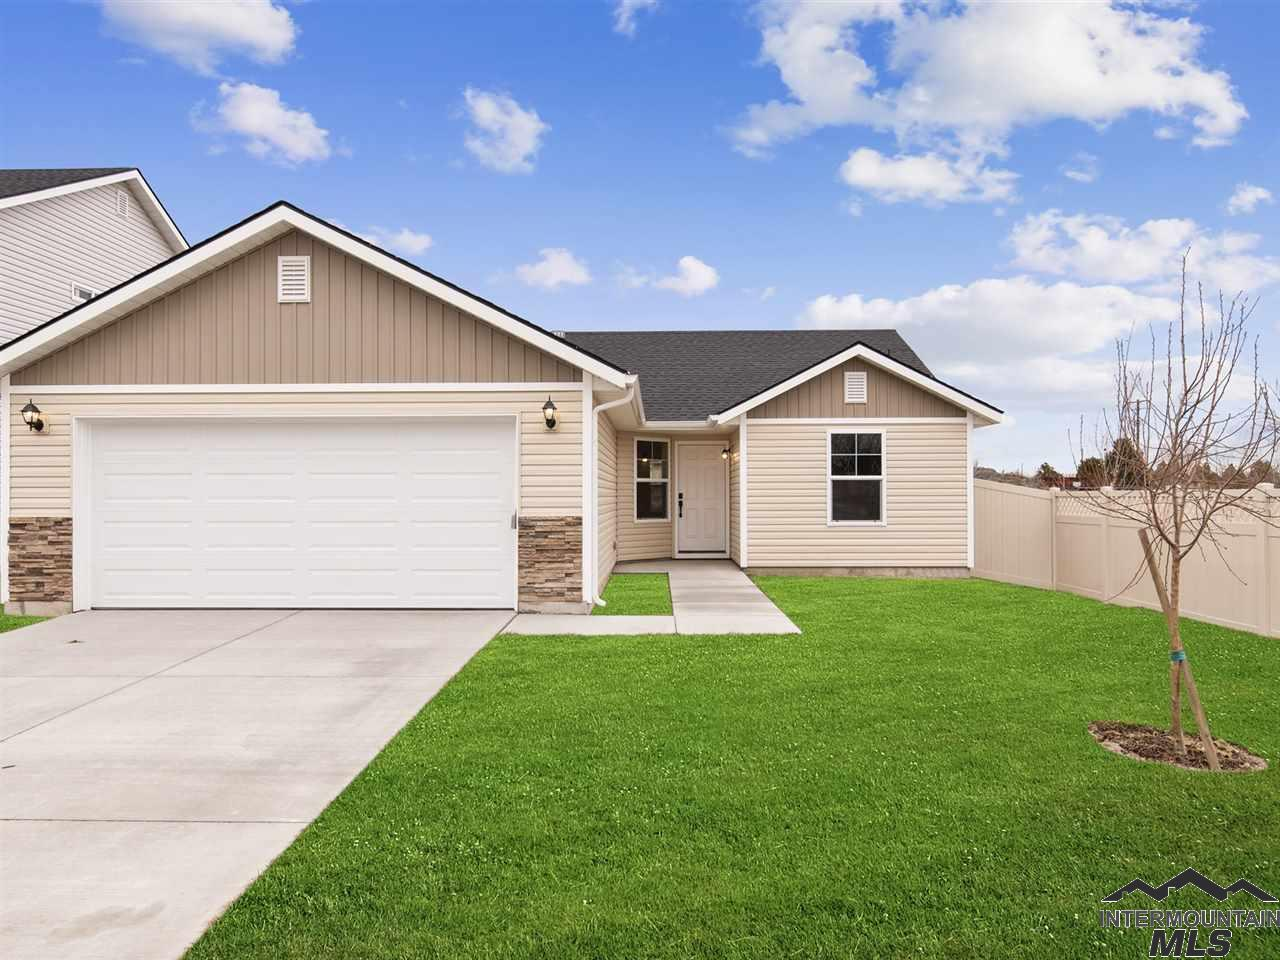 Photo for 12679 Clearwell St., Caldwell, ID 83607 (MLS # 98716321)